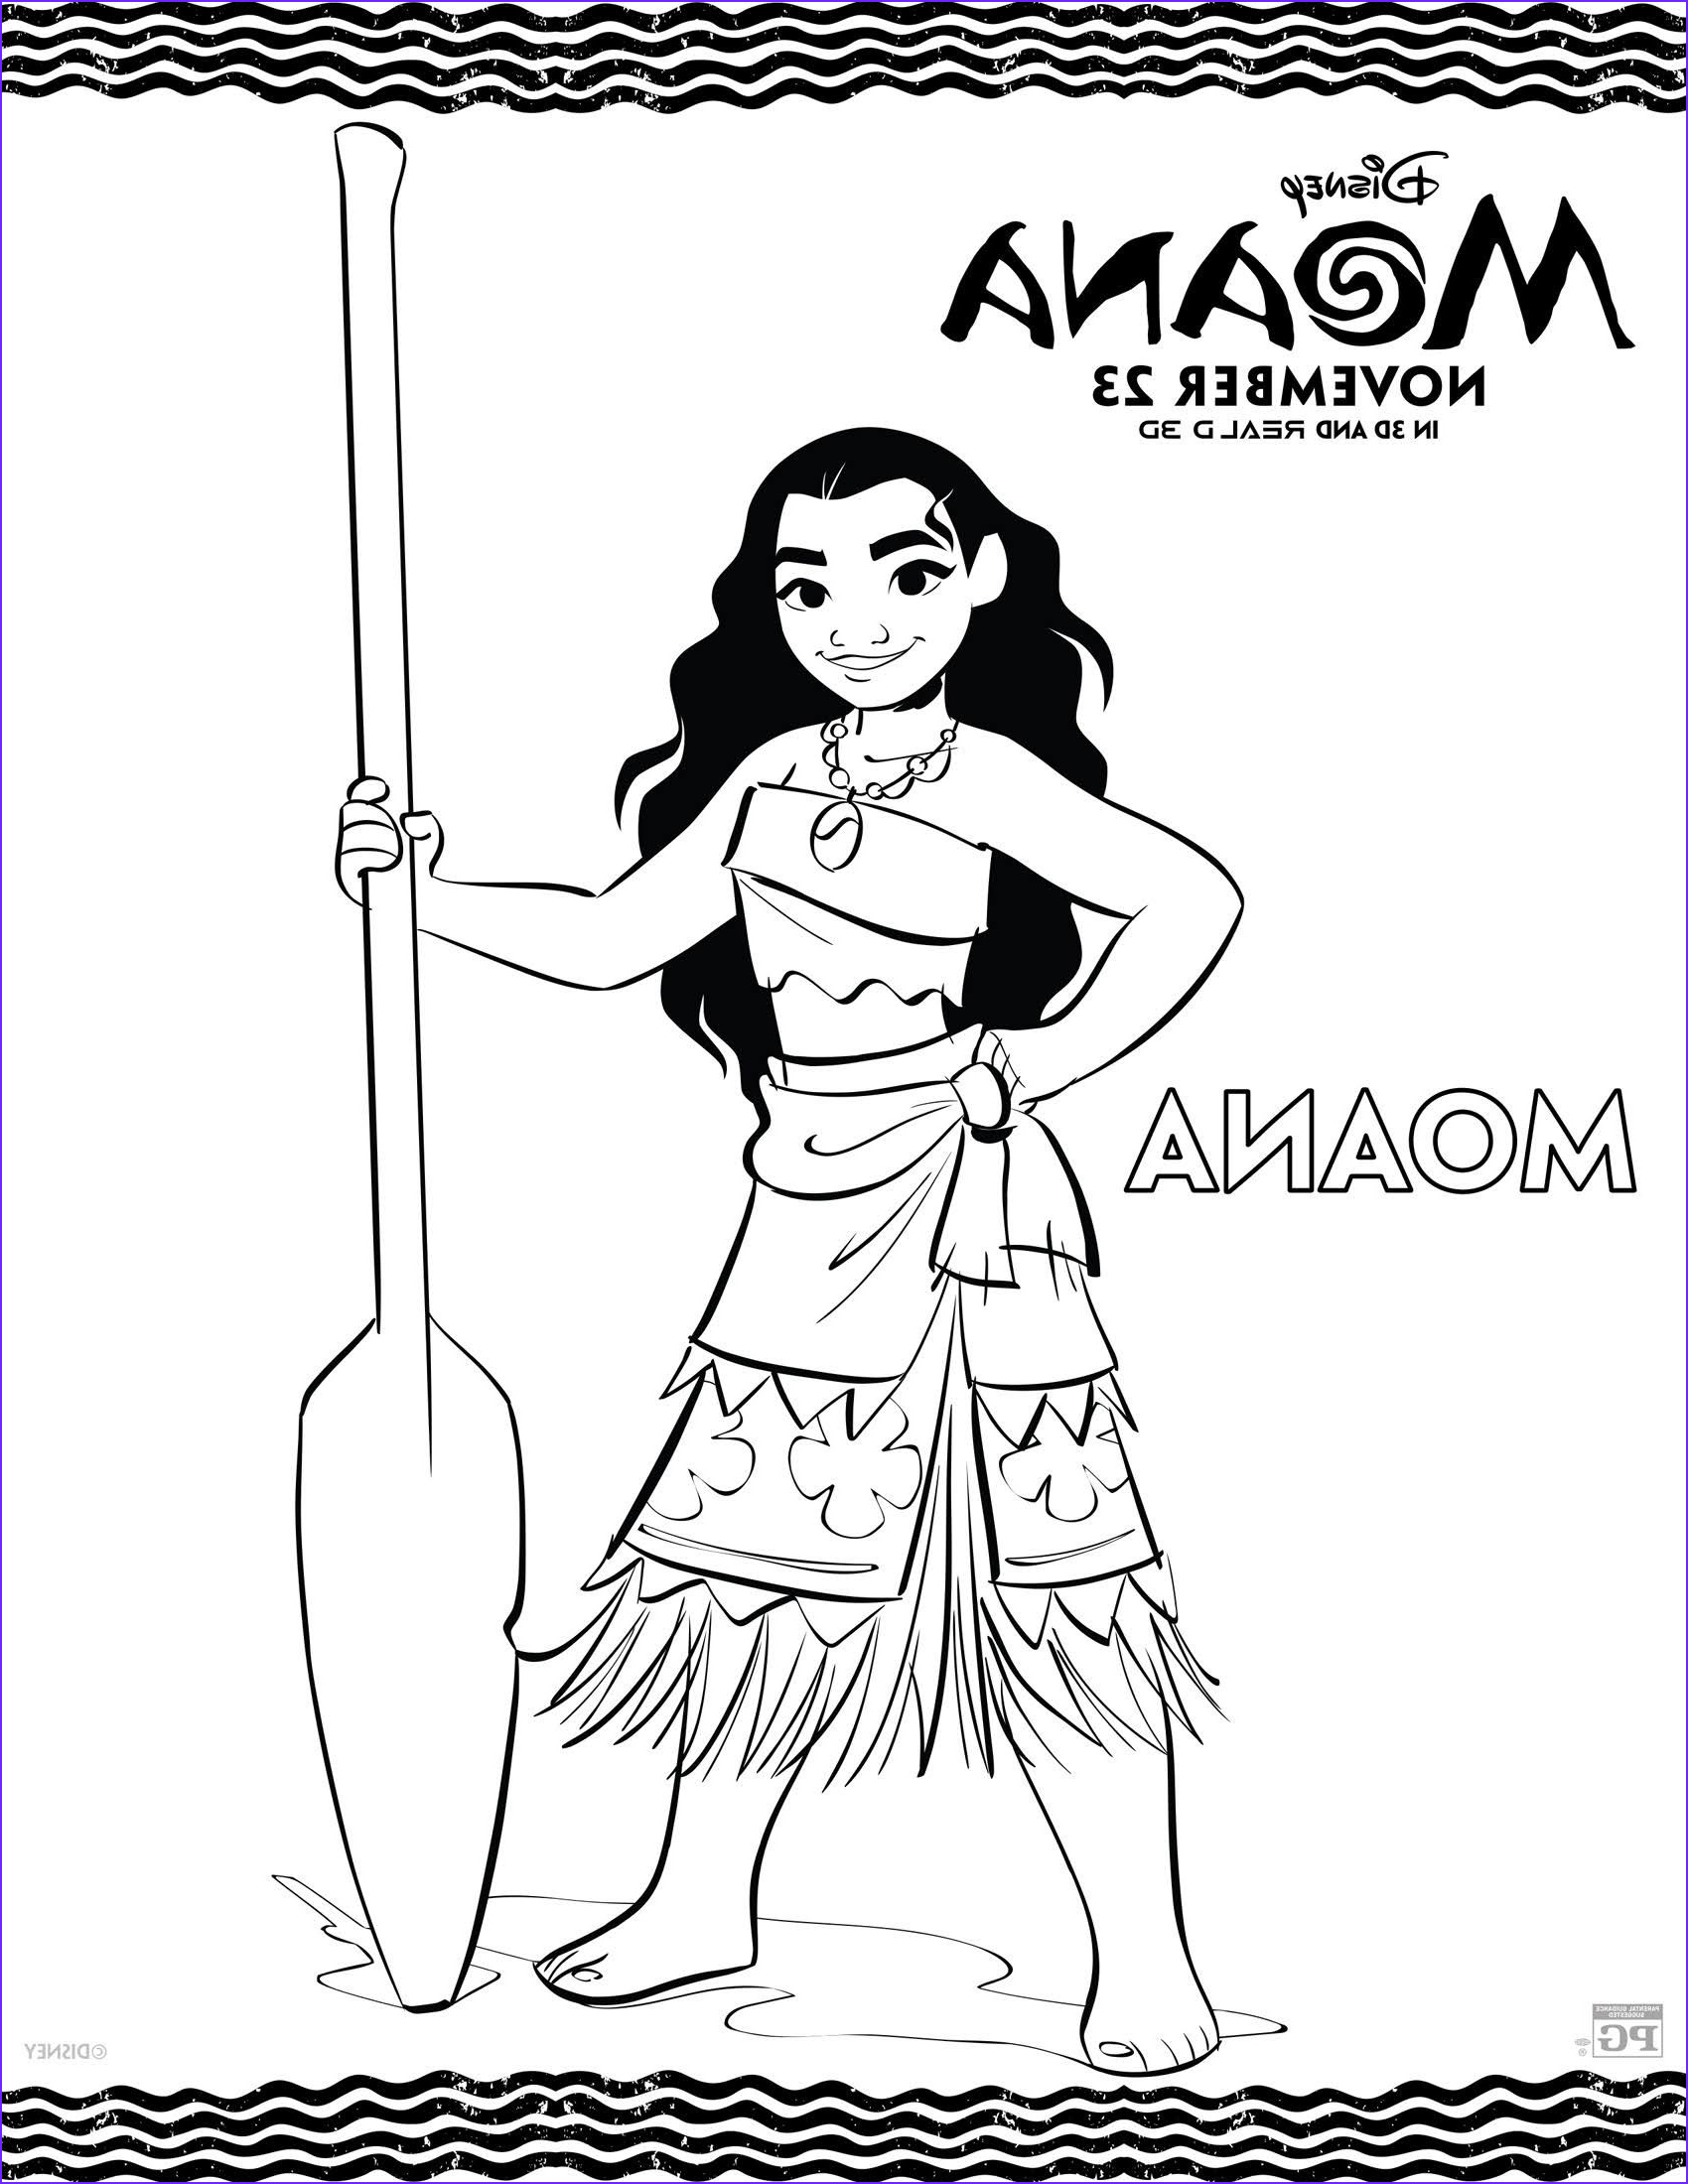 Moana Coloring Page Printable Unique Photos Disney S Moana Movie Review and Free Printable Coloring